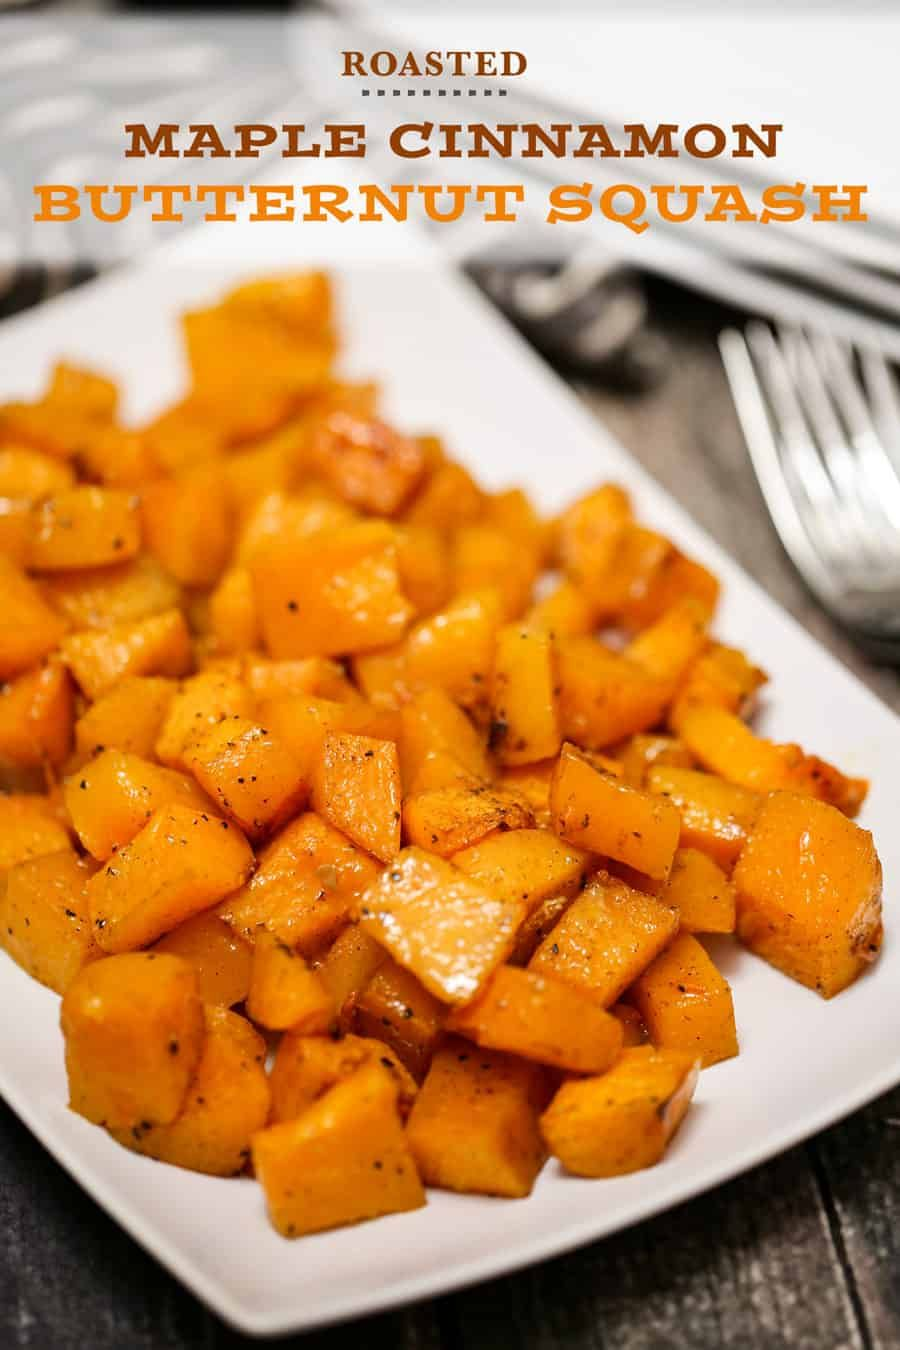 This Roasted Maple Cinnamon Butternut Squash Is A Better For Your